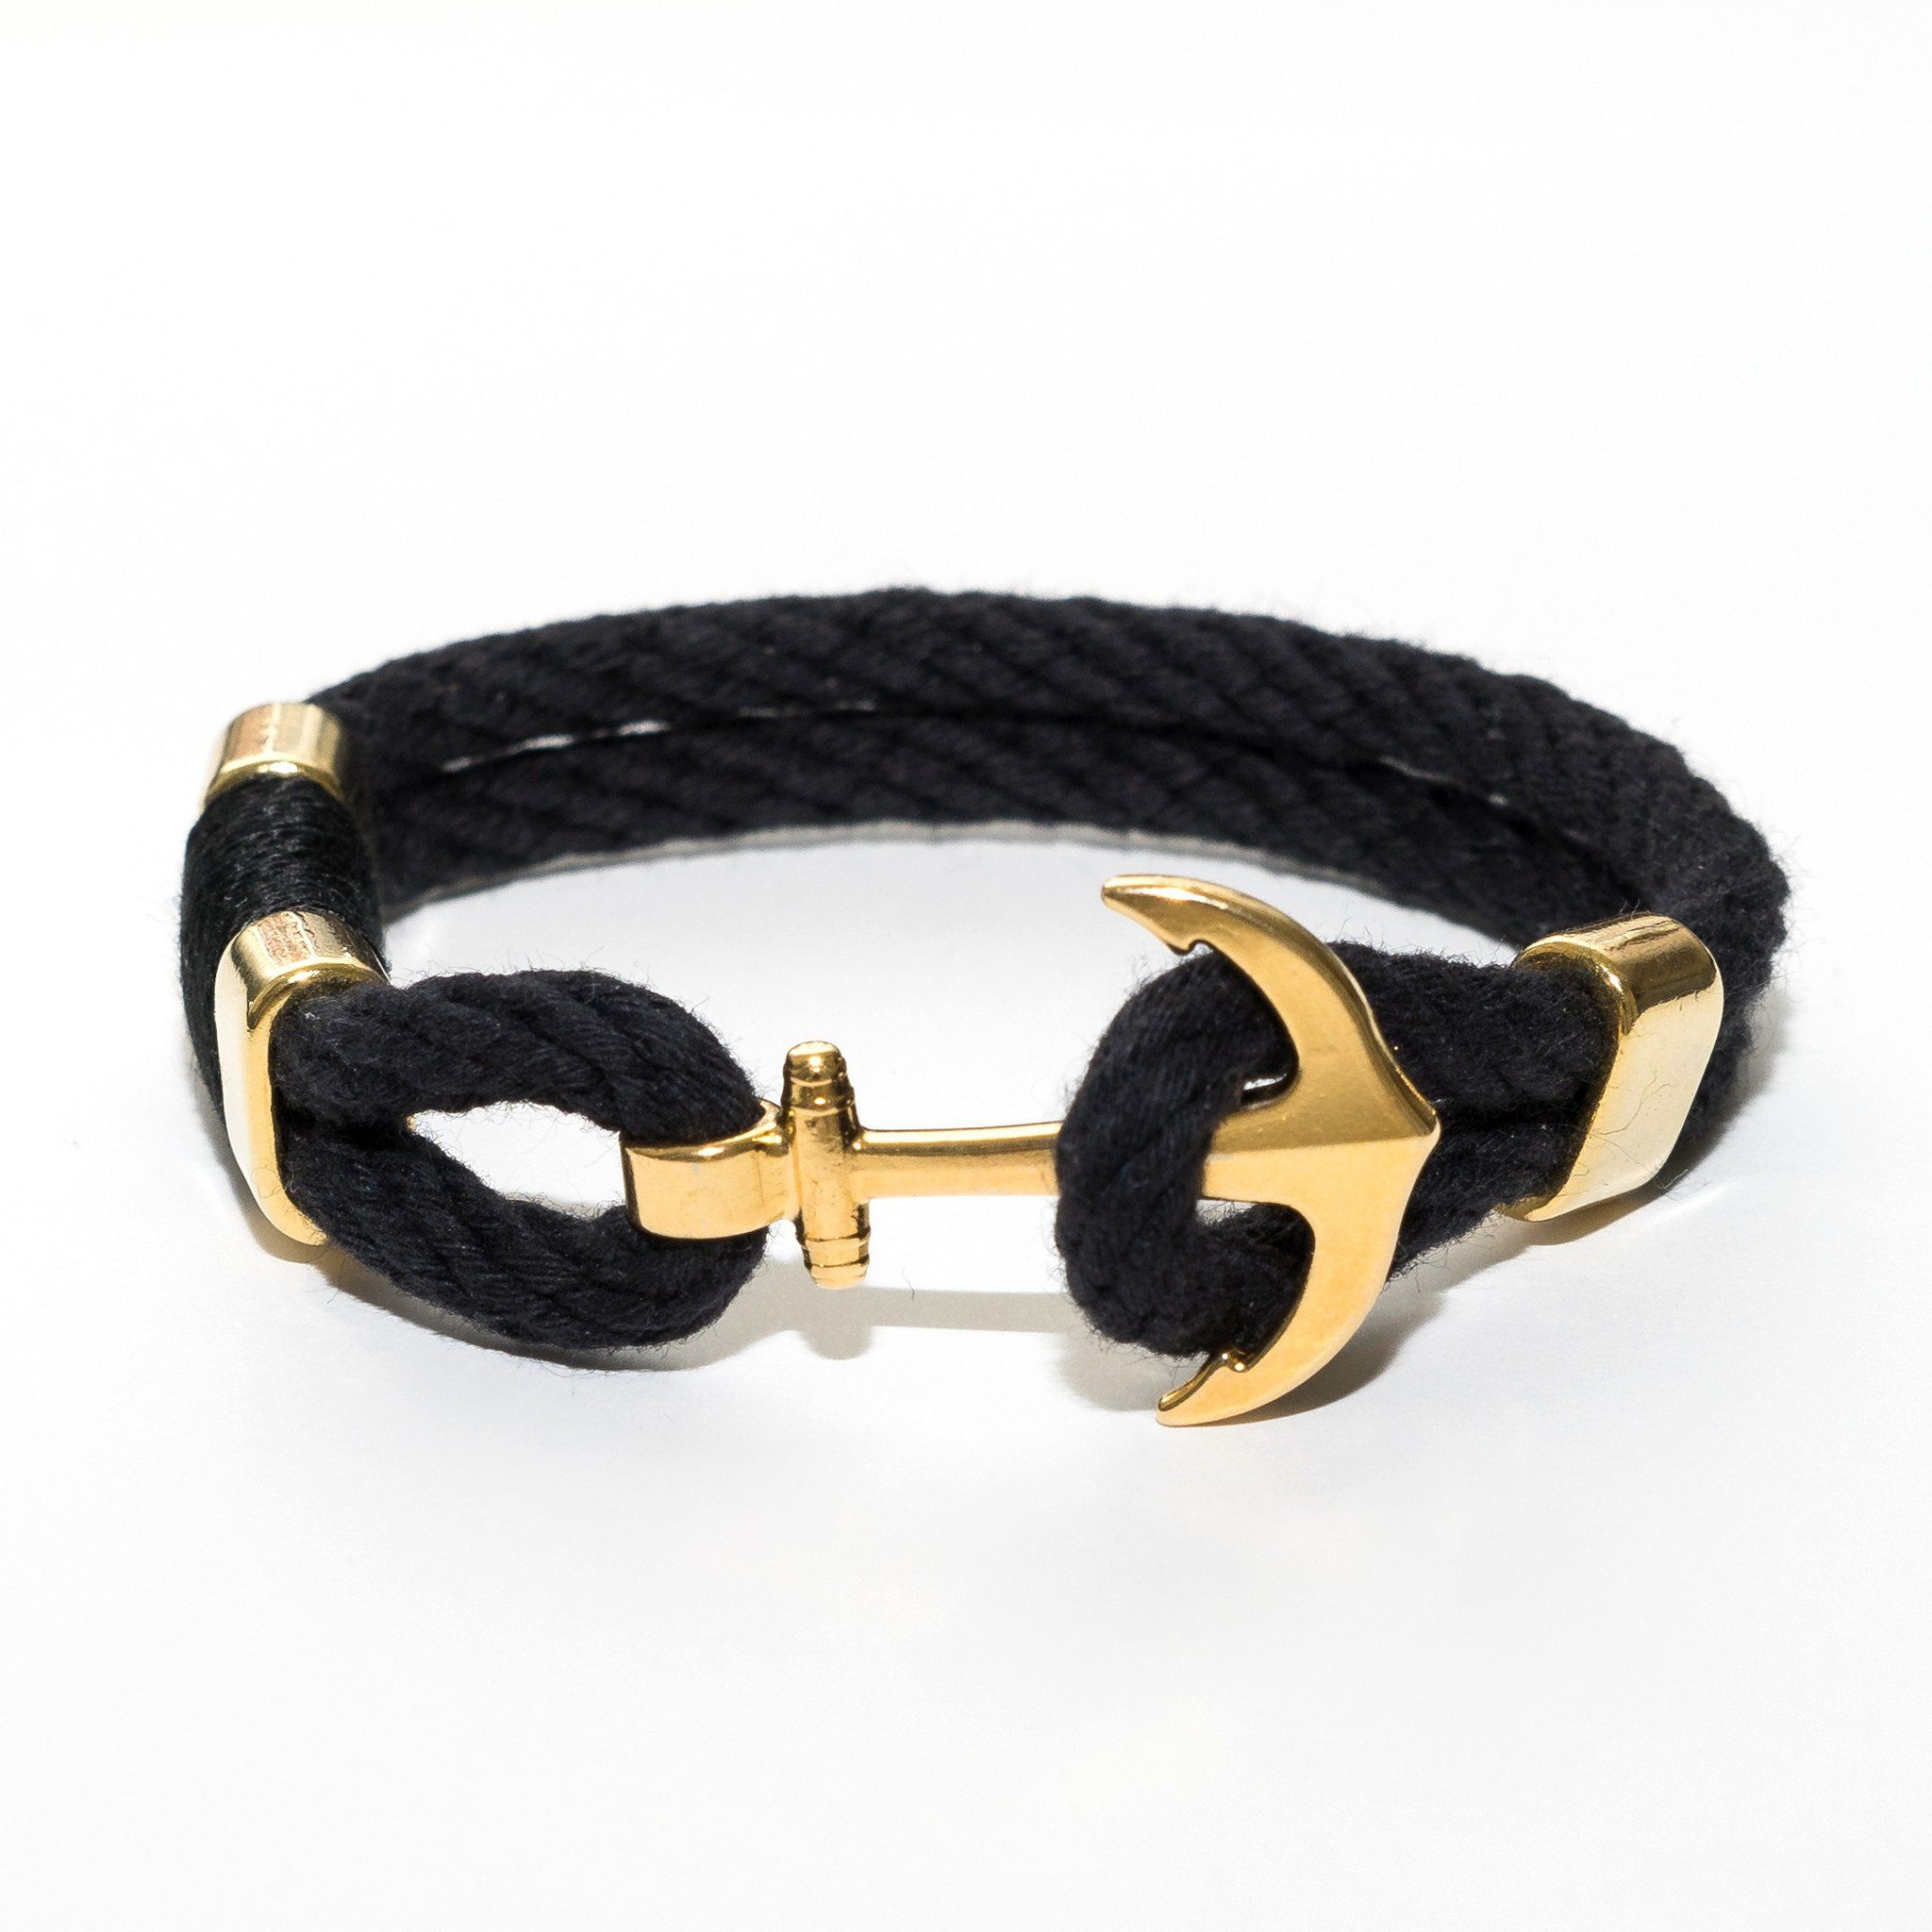 wall steel stainless masculina bracelet product indian leather men gold pulseiras w jewellery black great rope wholesale genuine